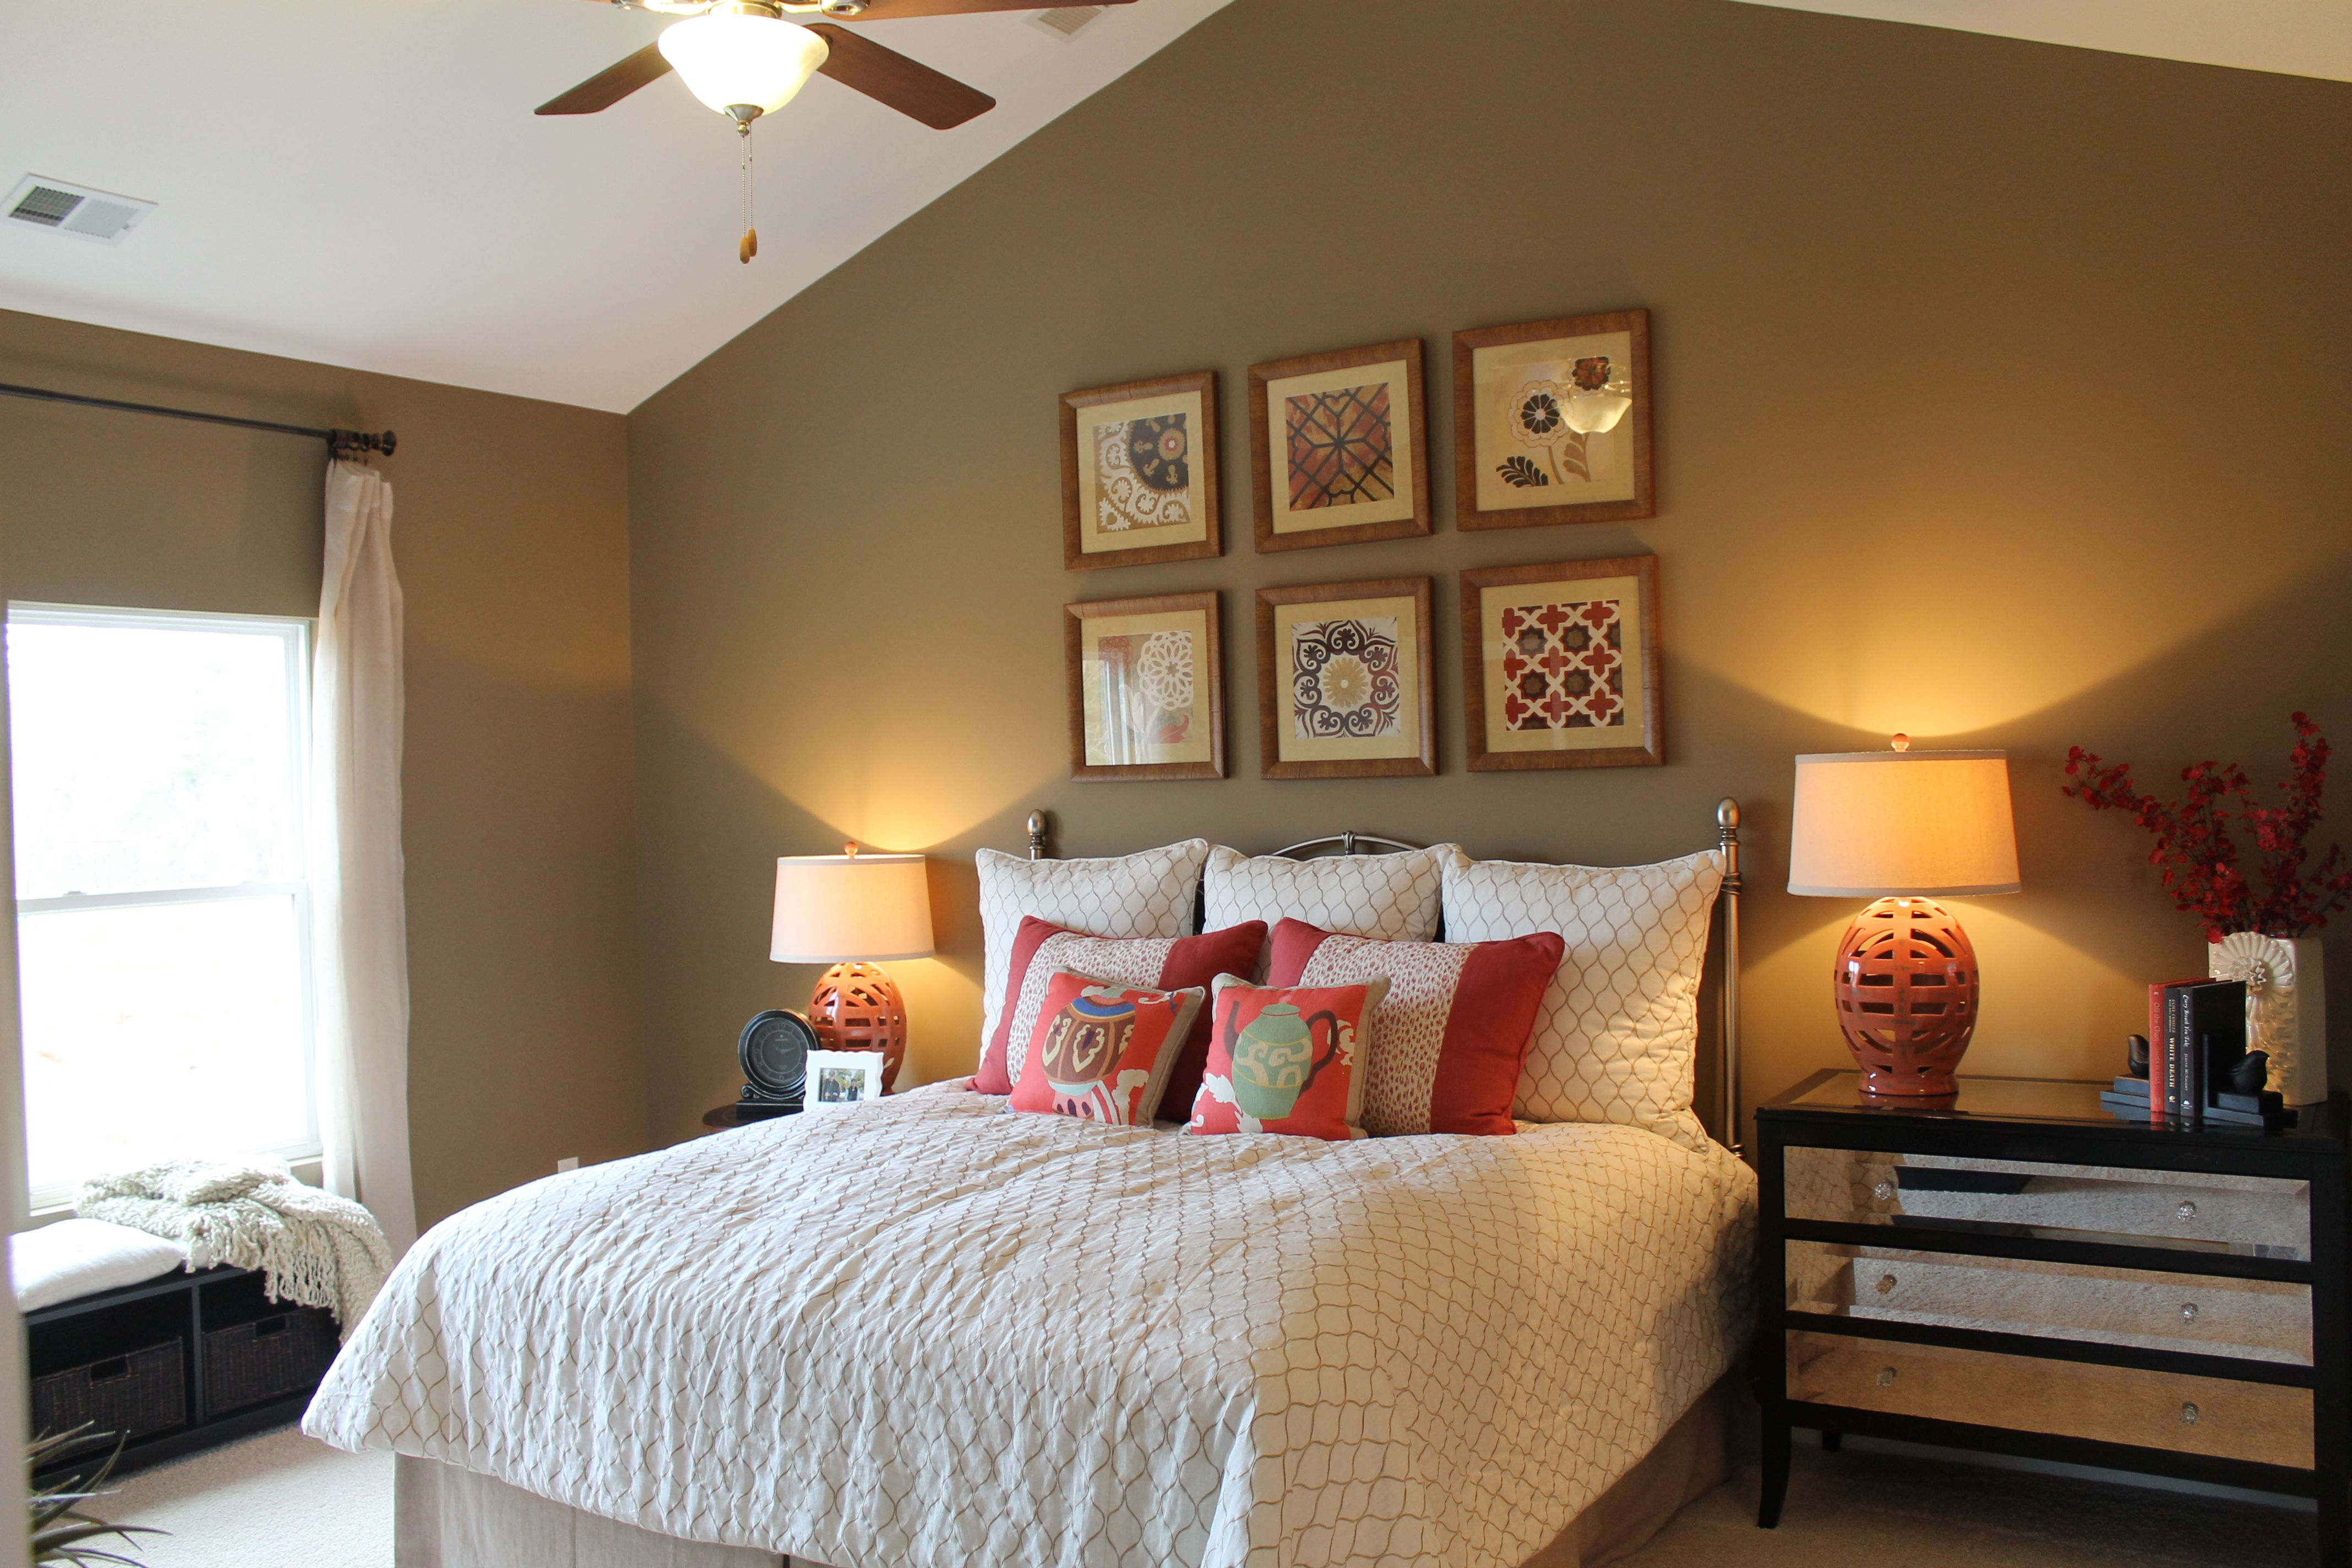 97 Vaulted Ceiling Living Room Paint Color Vaulted Ceiling